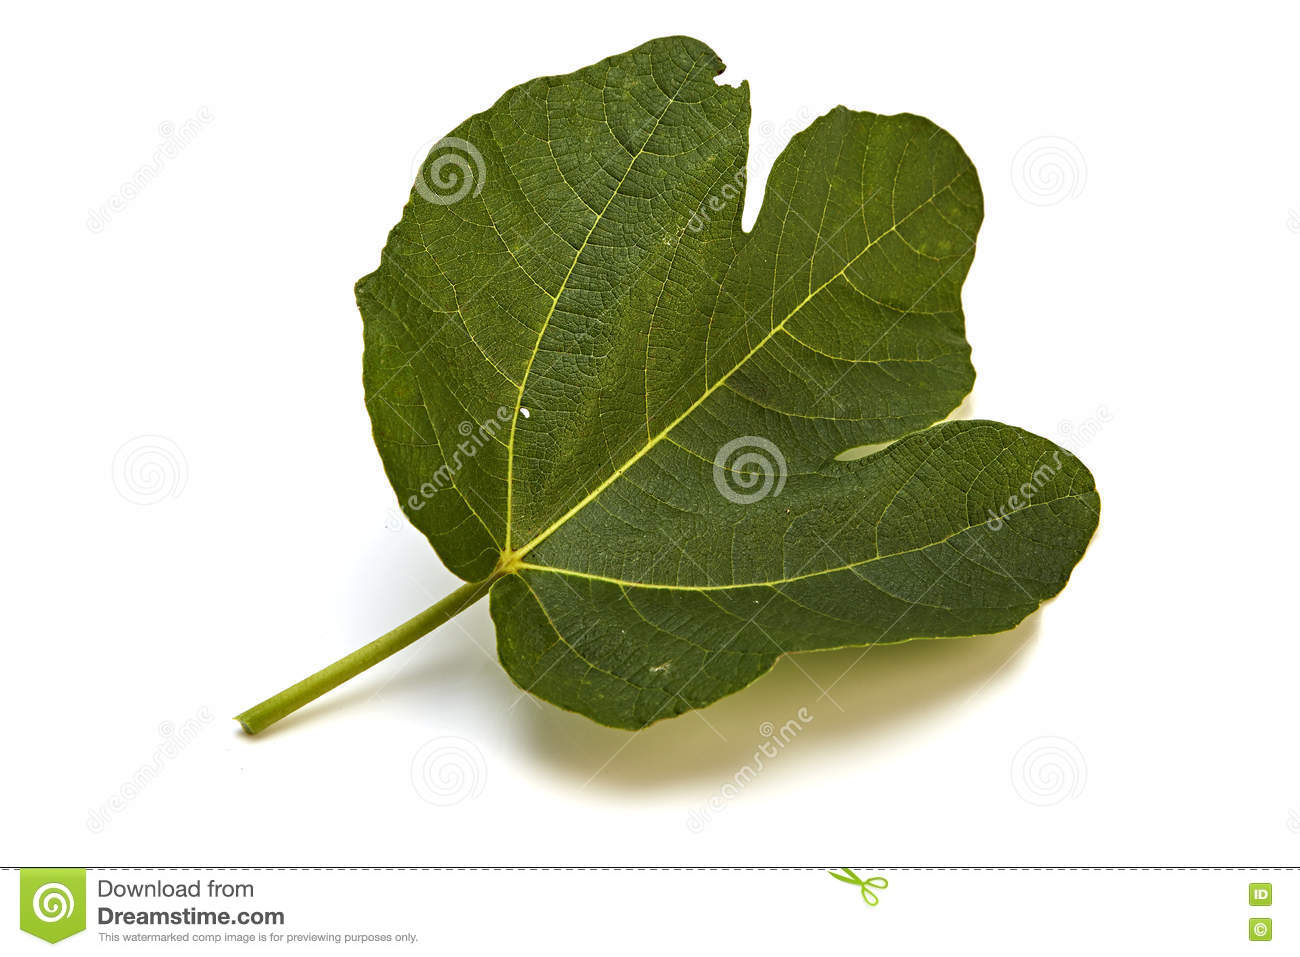 adam fig leaf stock photos images u0026 pictures 62 images